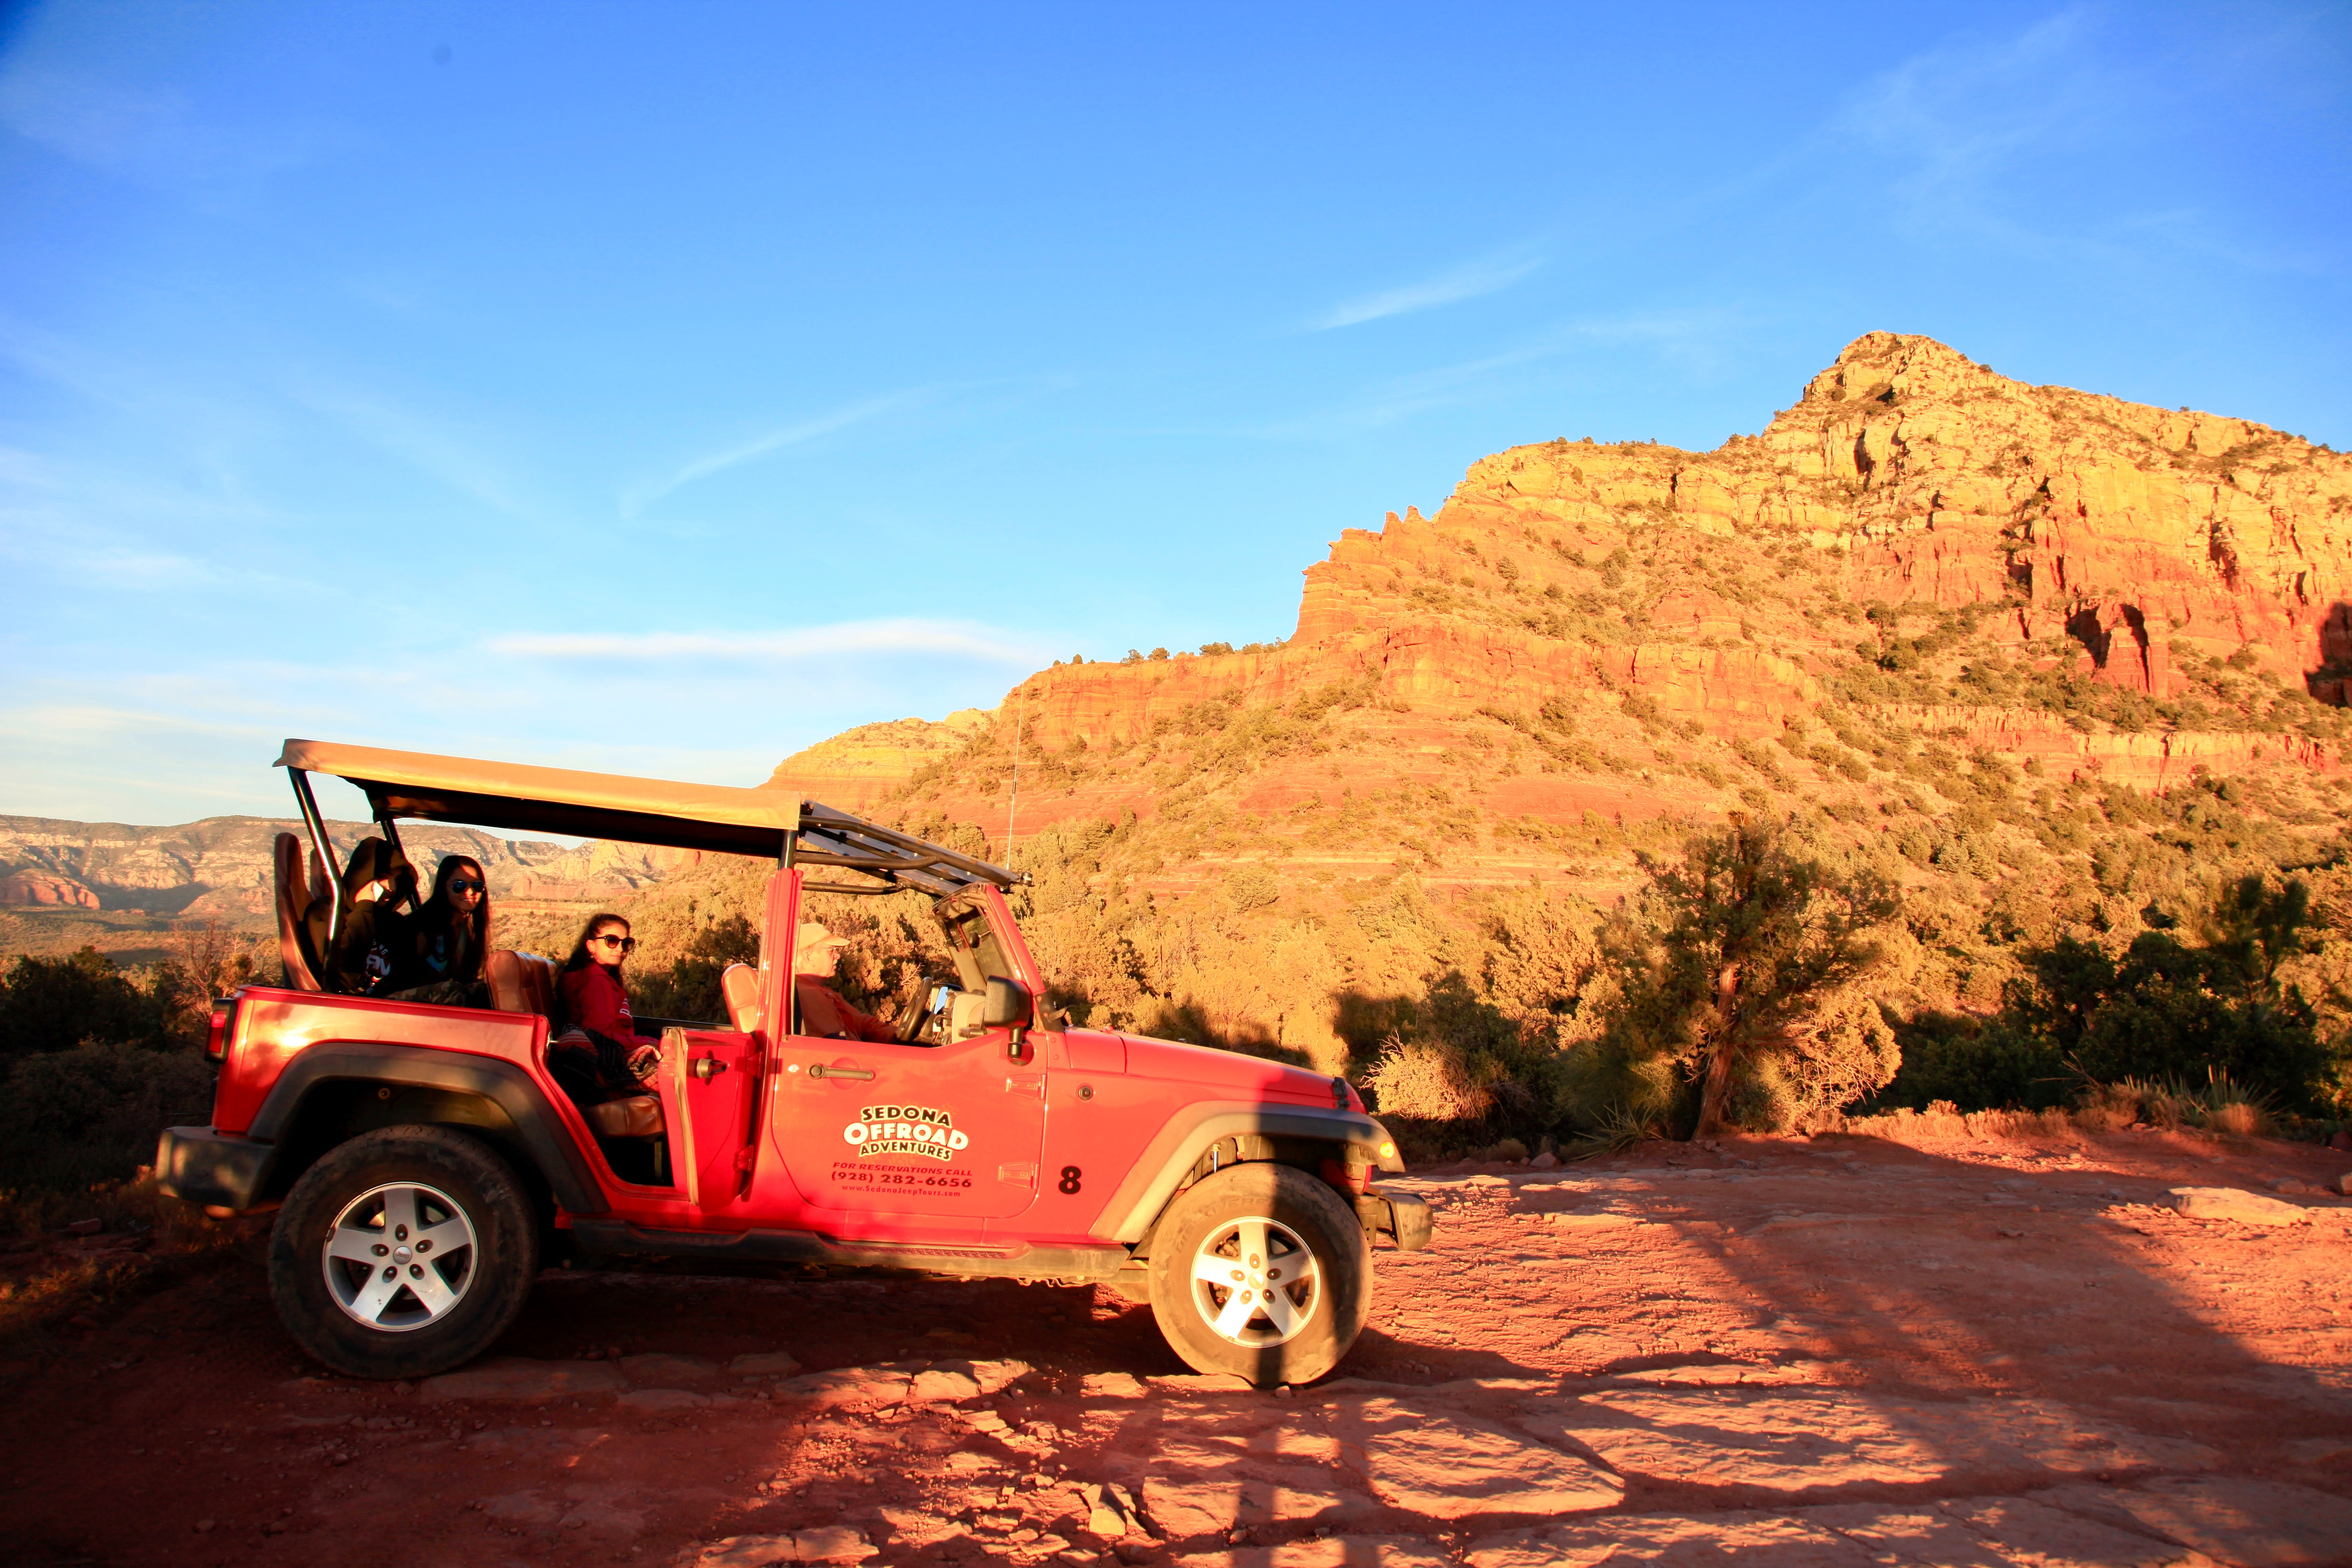 Red All-terrain Vehicle on Brown Rock Field during Sunset, Adventure, Offroad, Vehicle, Transportation system, HQ Photo